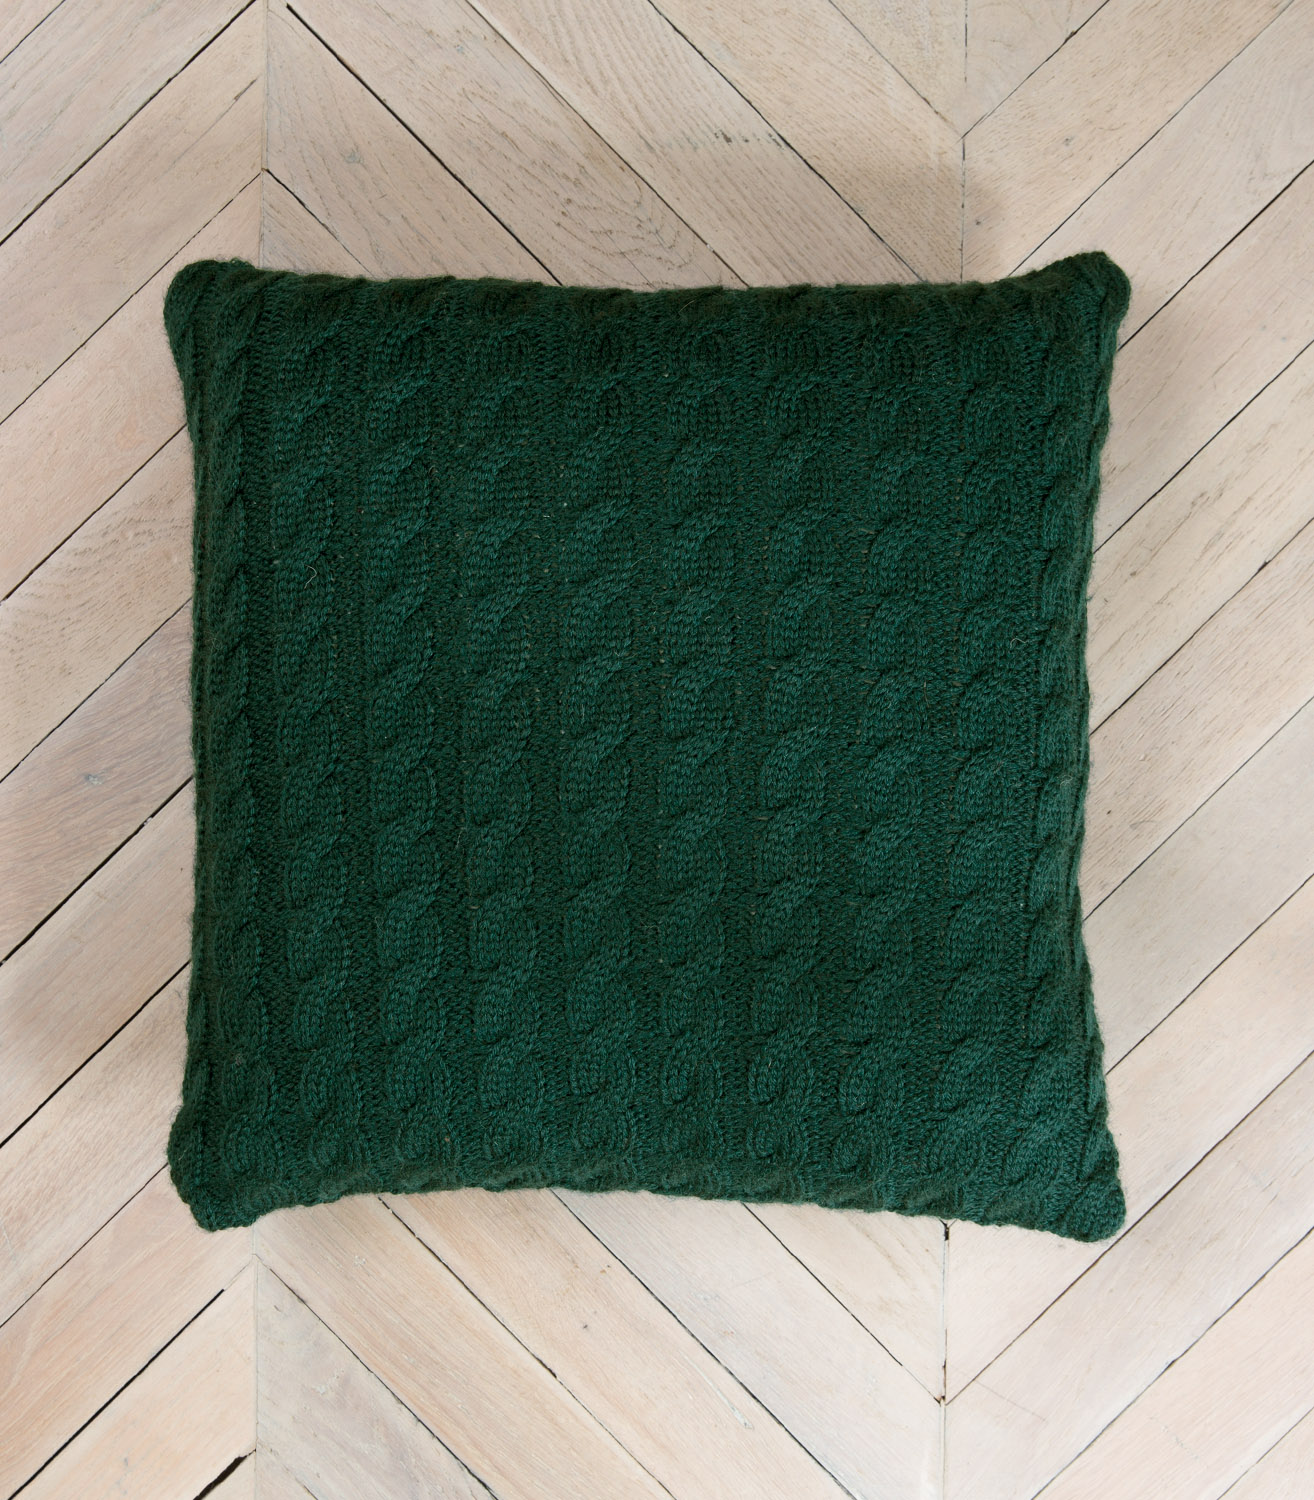 Chenille Sofa Cushion Covers picture on Chenille Sofa Cushion Covers112266591390 with Chenille Sofa Cushion Covers, sofa 93ca49955f0323fc74202d4ab90a1f53